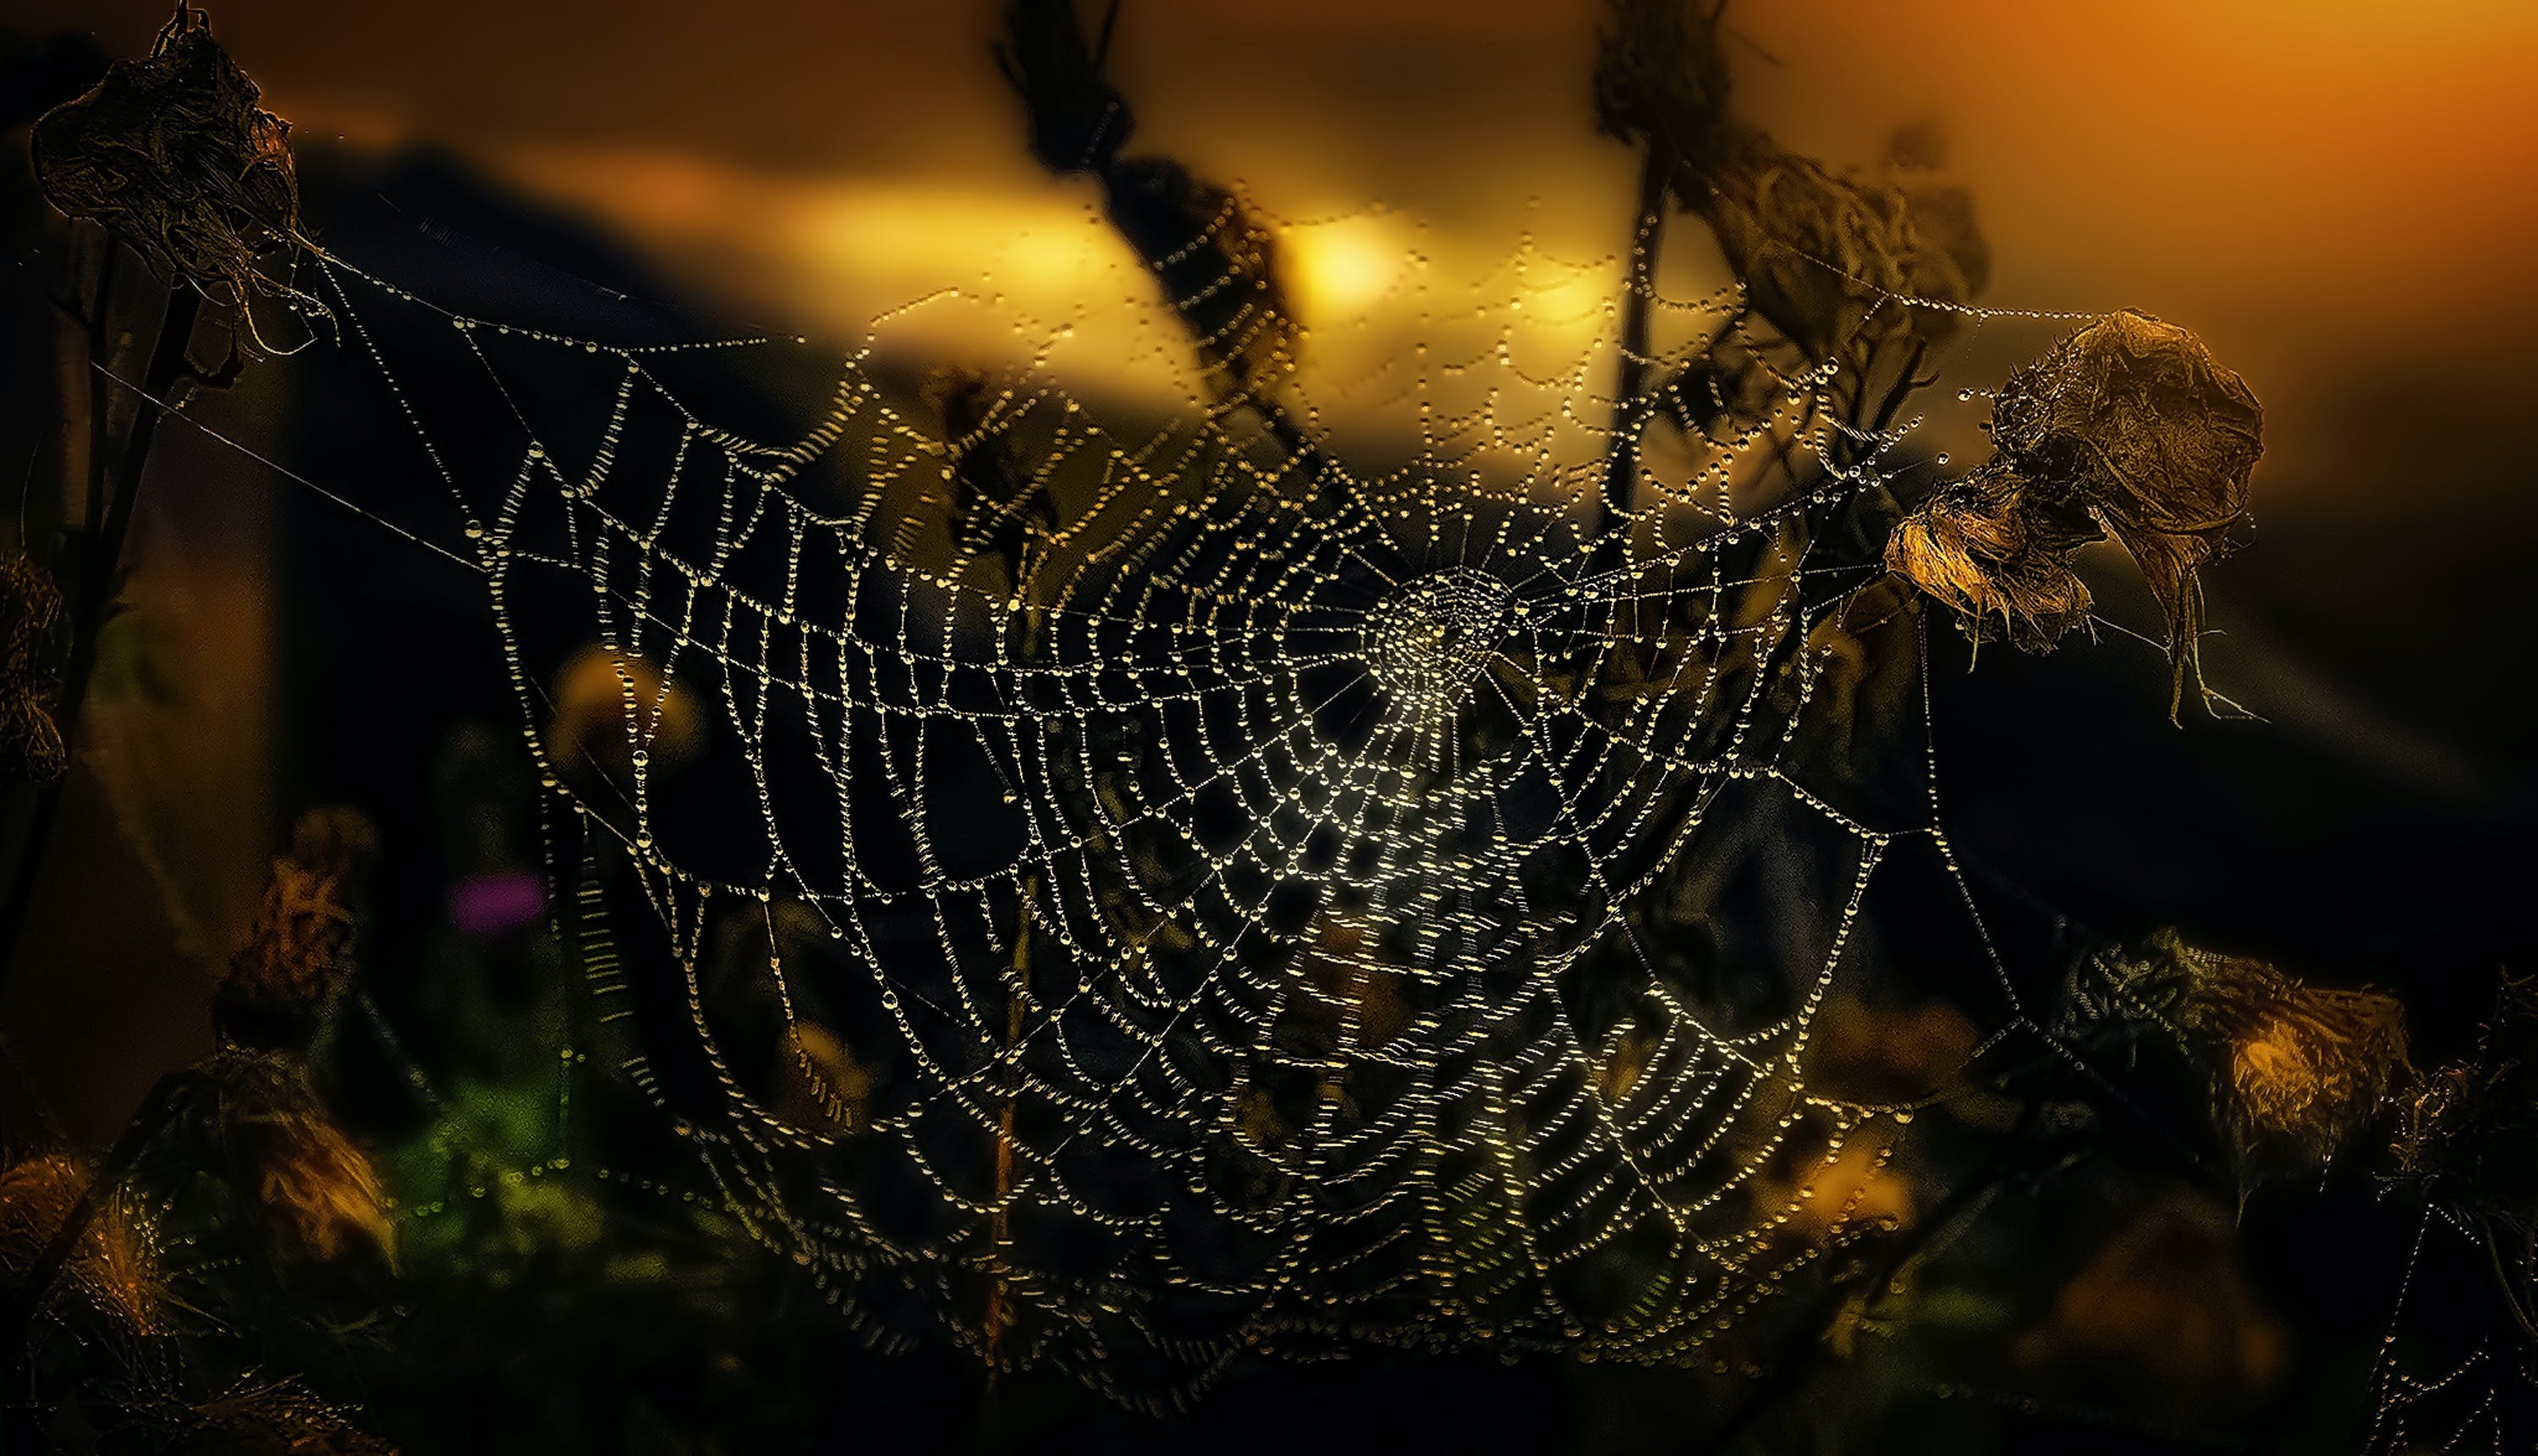 Spiderweb in Shallow Focus Photography